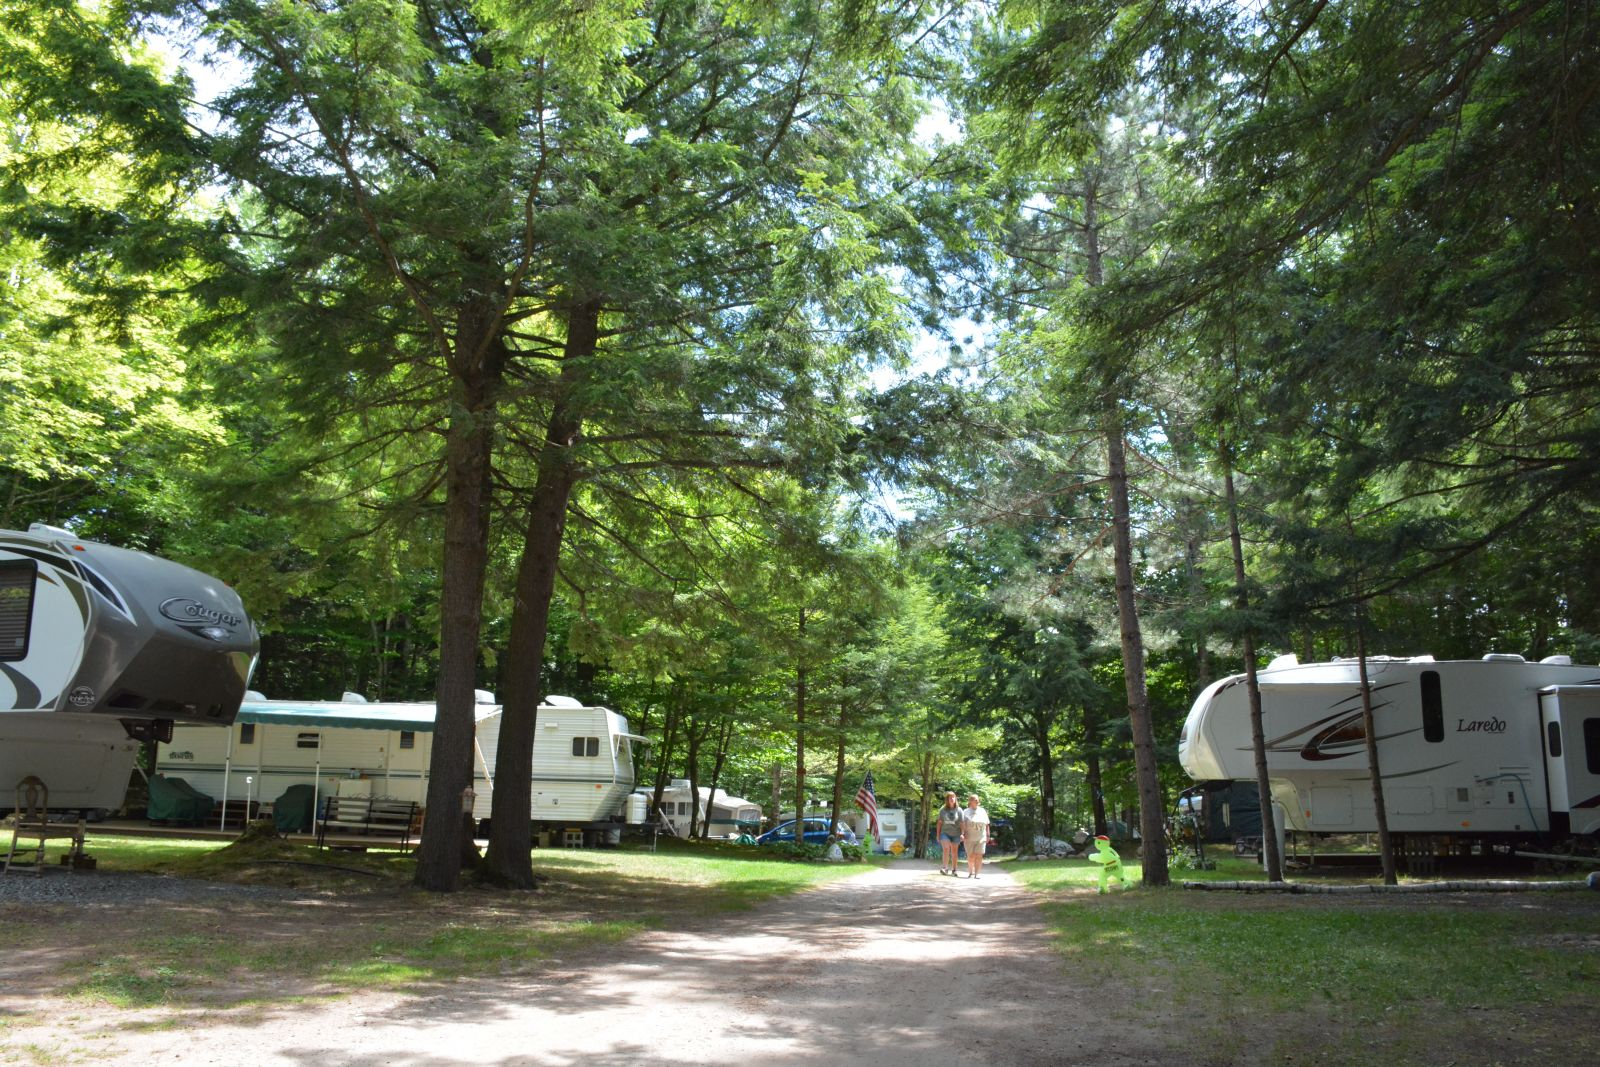 Campers take a stroll around the campground.